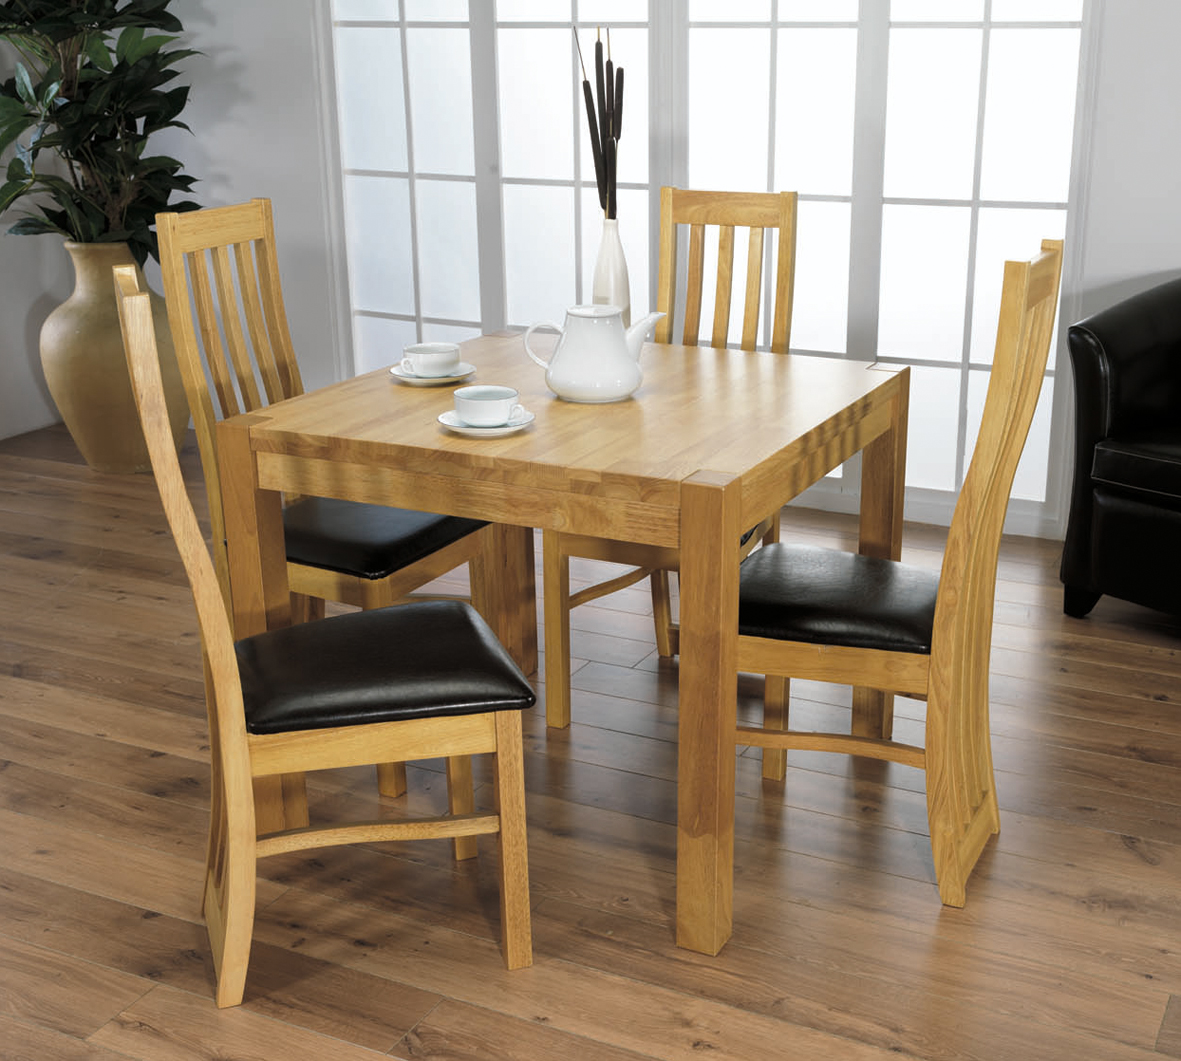 Clearance kitchen tables photo - 1